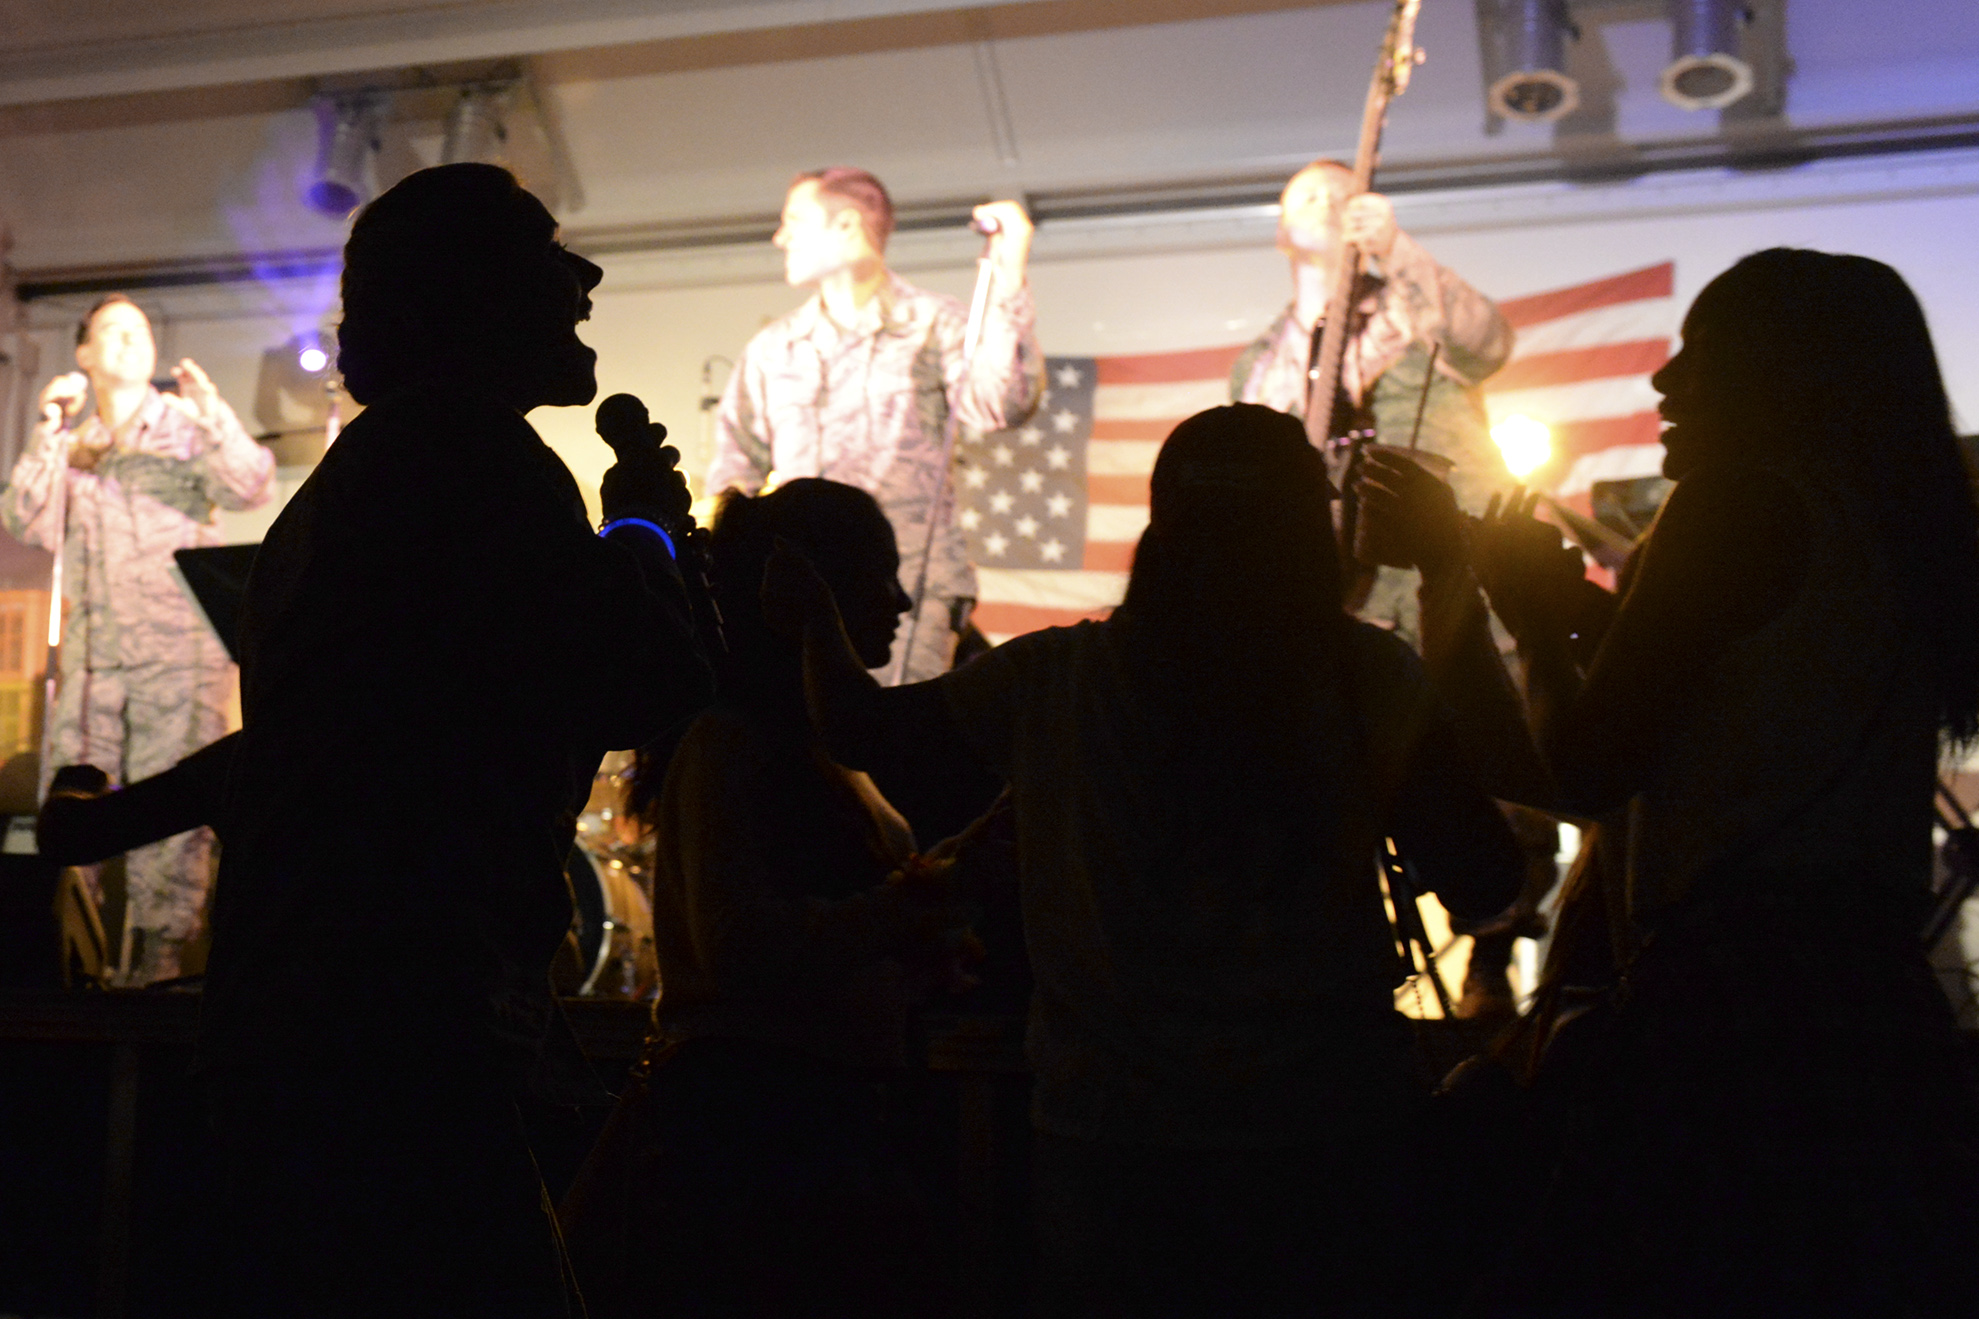 A Band of the Pacific-Hawaii performer sings for the audience at Yokota Air Base, Japan, July 2, 2015. The band performed popular songs with themes celebrating America and in honor of Independence Day. (U.S. Air Force photo by Airman 1st Class Elizabeth Baker/Released)